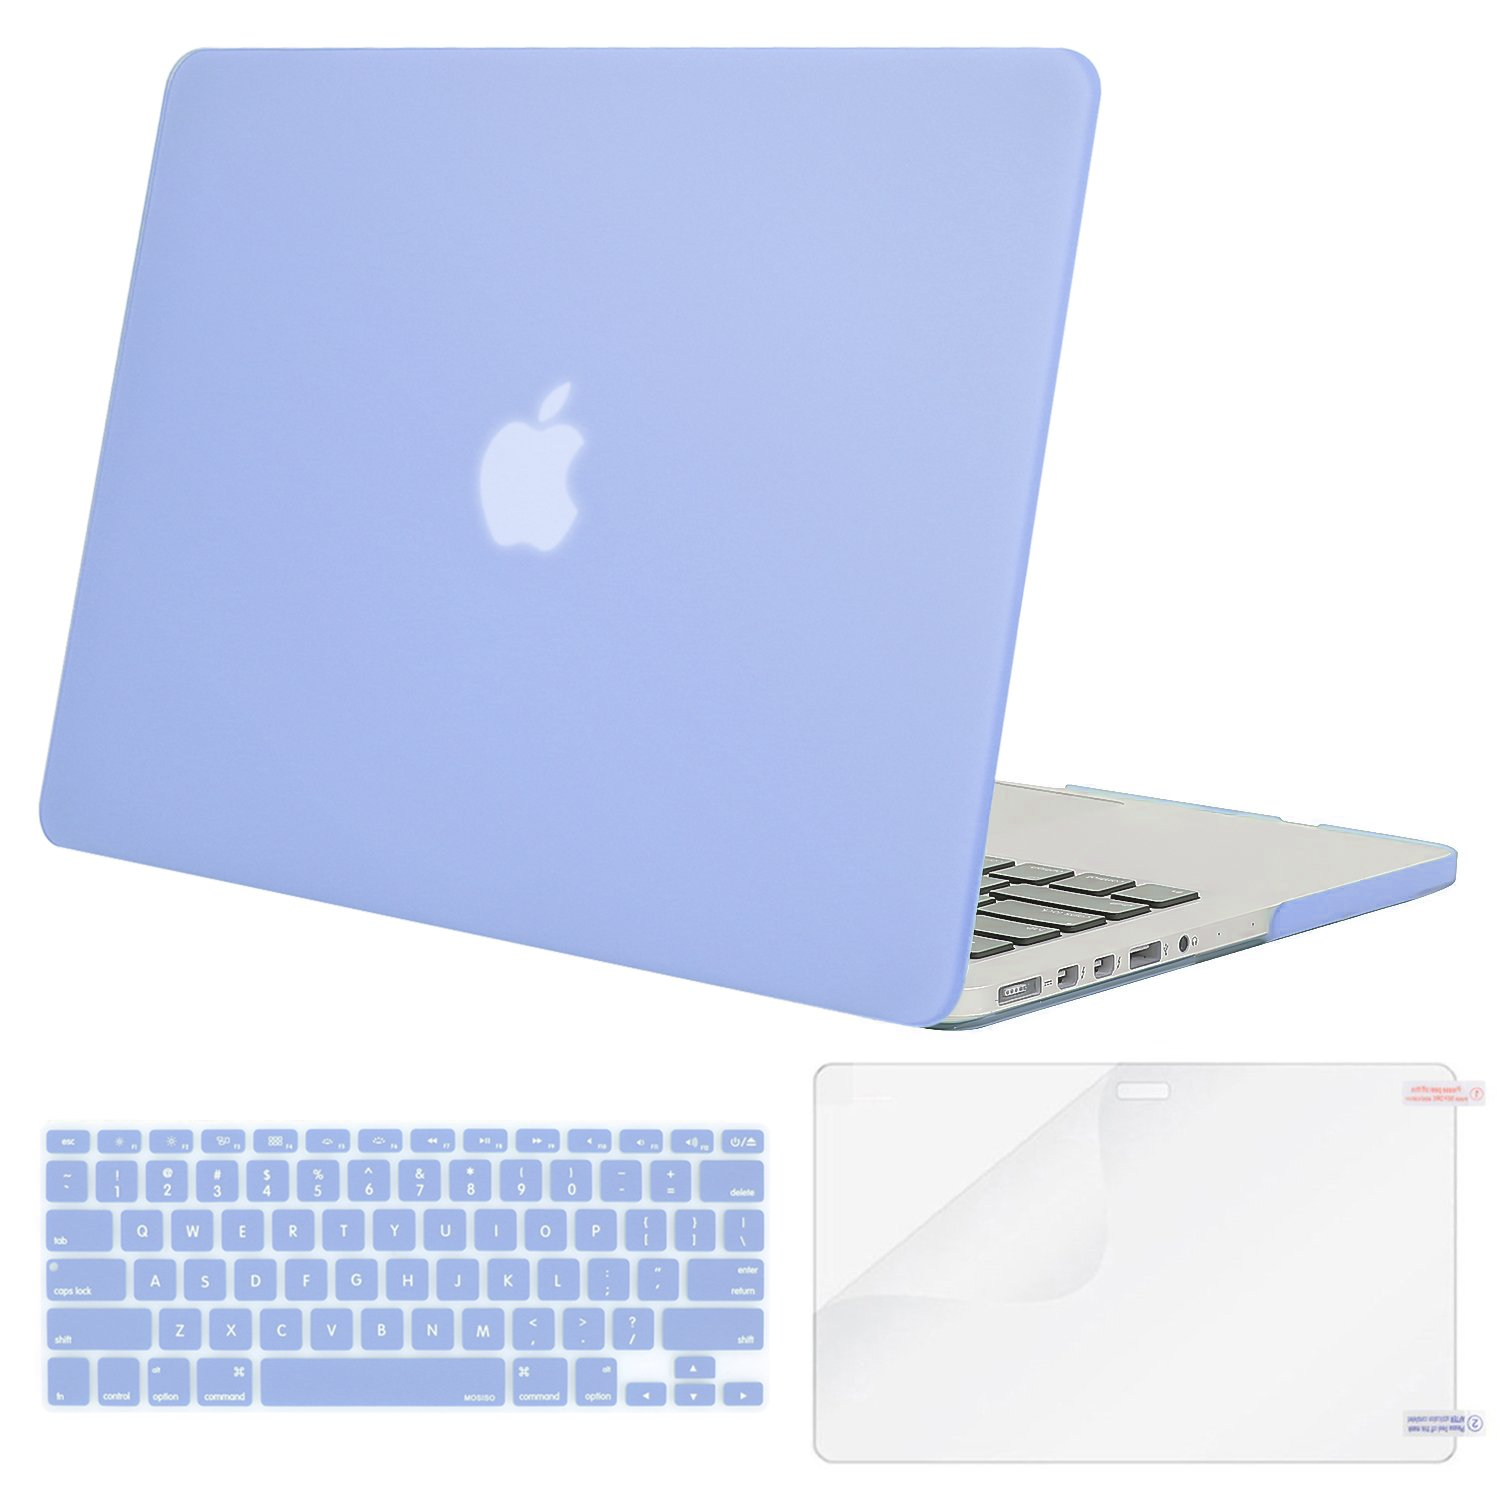 MOSISO Case Only Compatible MacBook Pro (W/O USB-C) Retina 13 Inch (A1502/A1425)(W/O CD-ROM) Release 2015/2014/2013/end 2012 Plastic Hard Shell & Keyboard Cover & Screen Protector, Serenity Blue